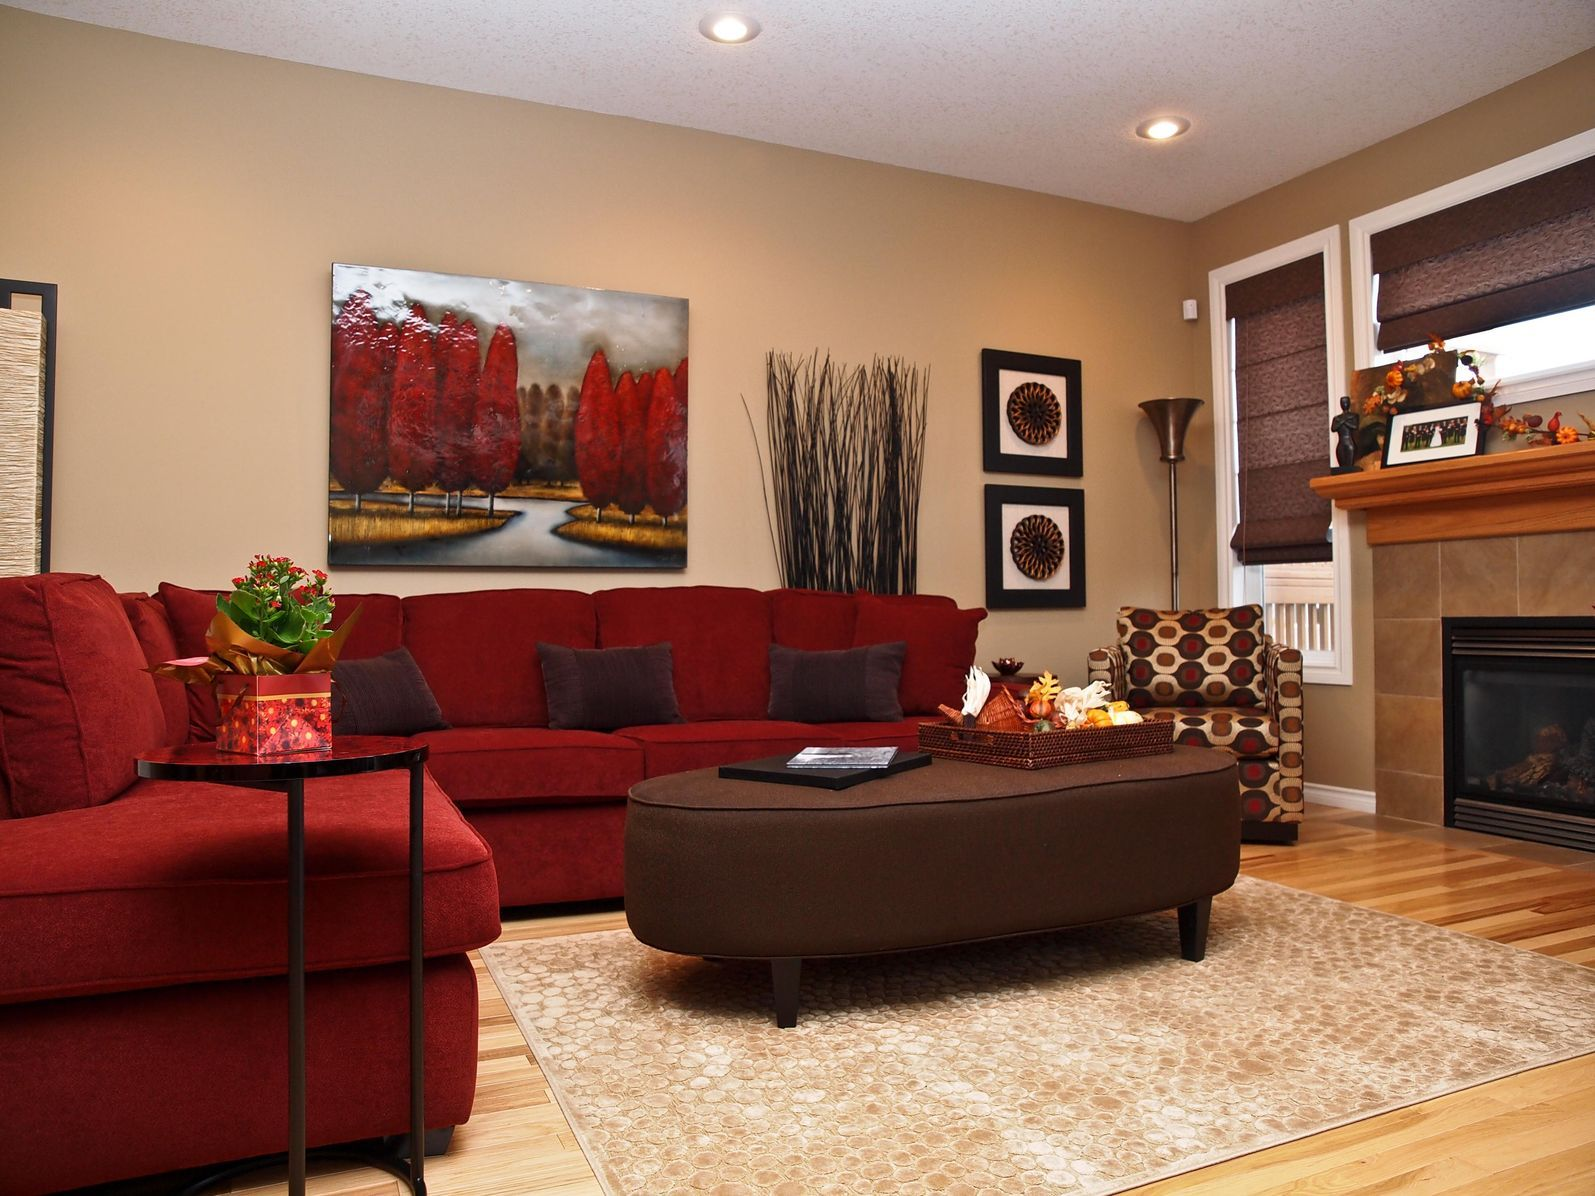 Living Room With Red Furniture 17 Best Ideas About Red Sofa Decor On Pinterest Red Couch Living